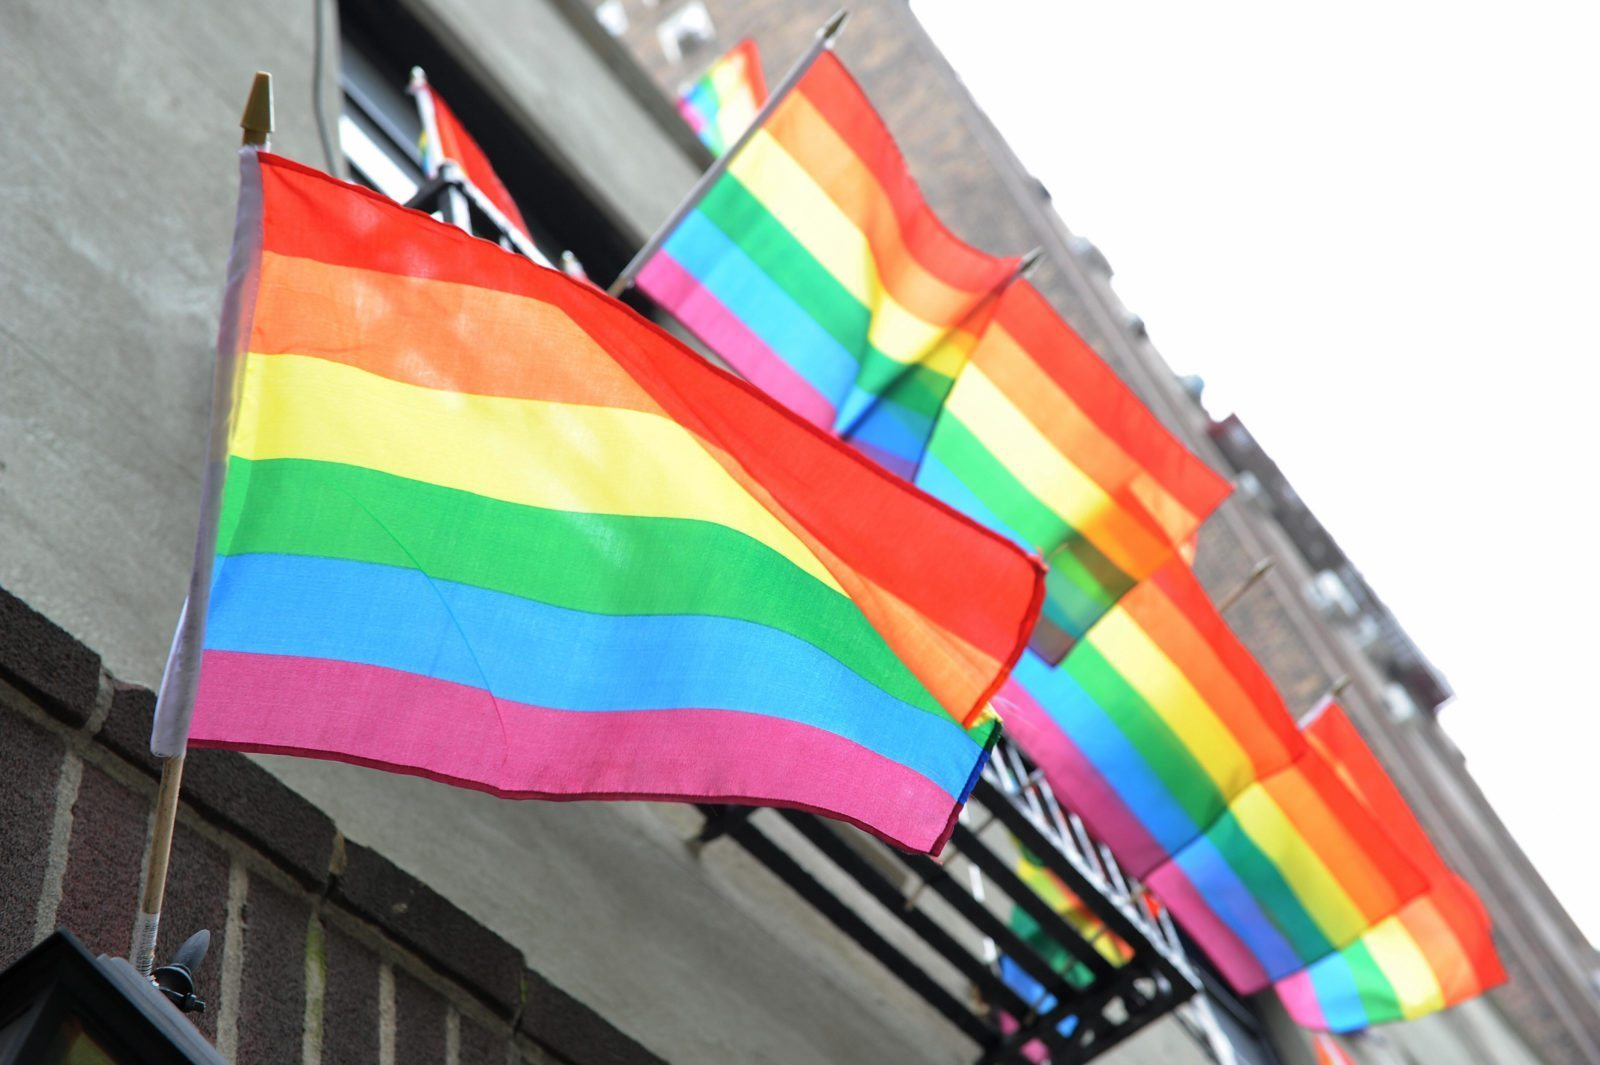 LGBT+ Pride flags flutter in the breeze from a building